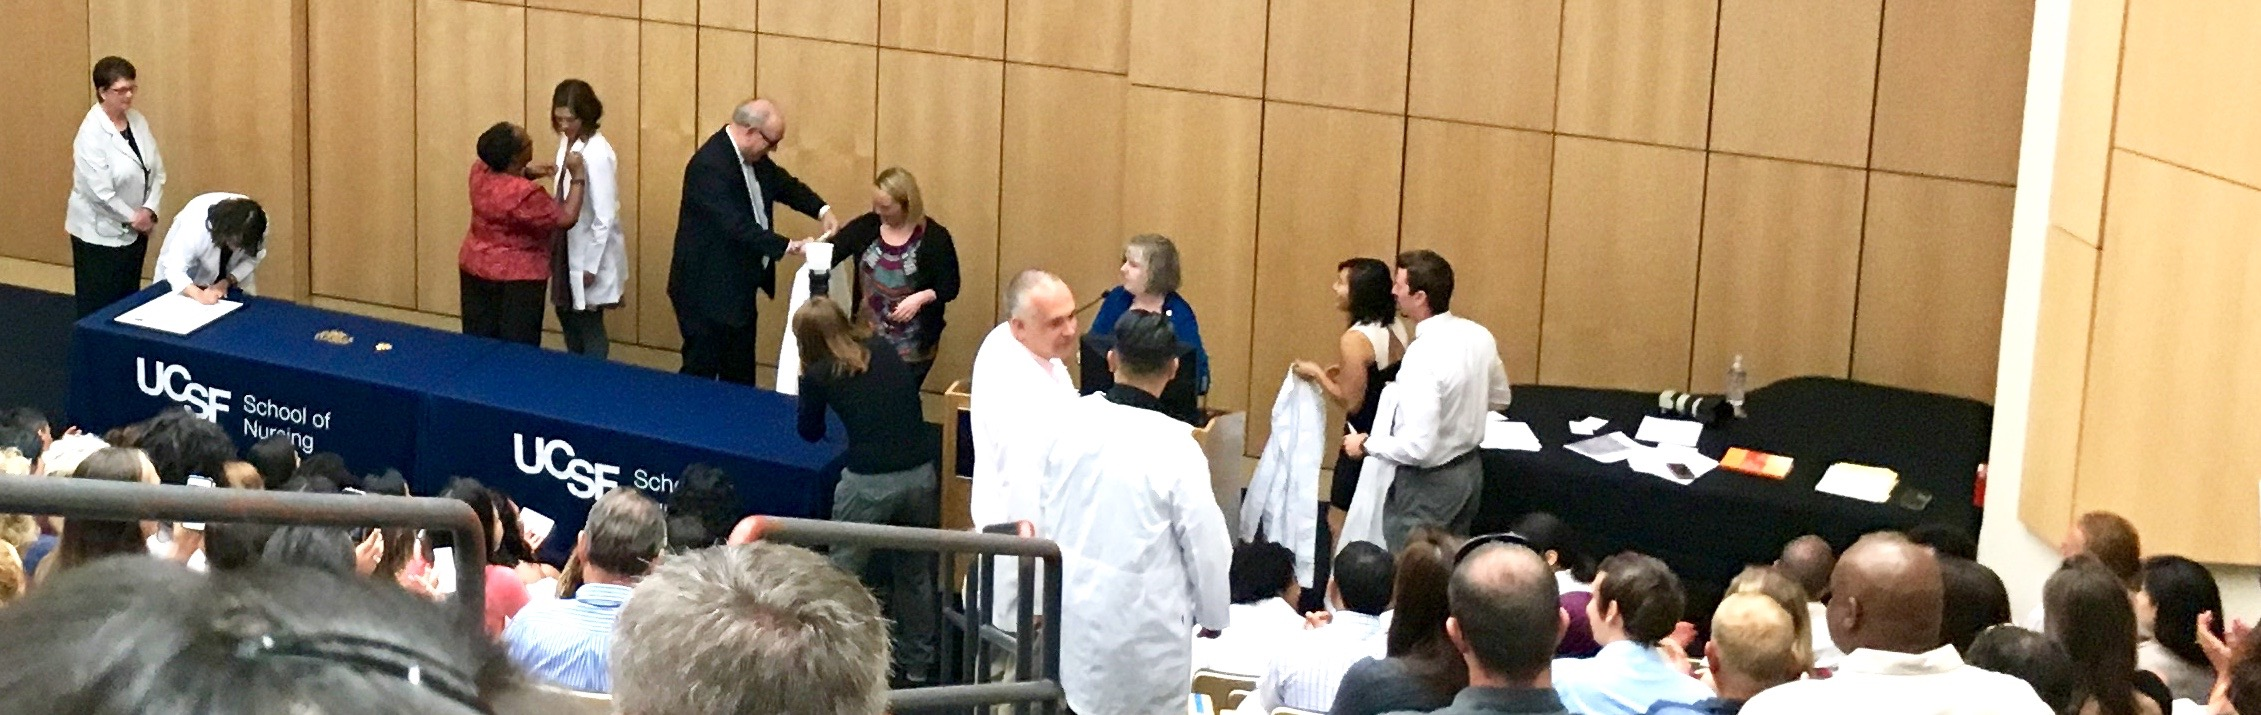 2016 MEPN students approach the podium and stage to receive their white coats and pins.